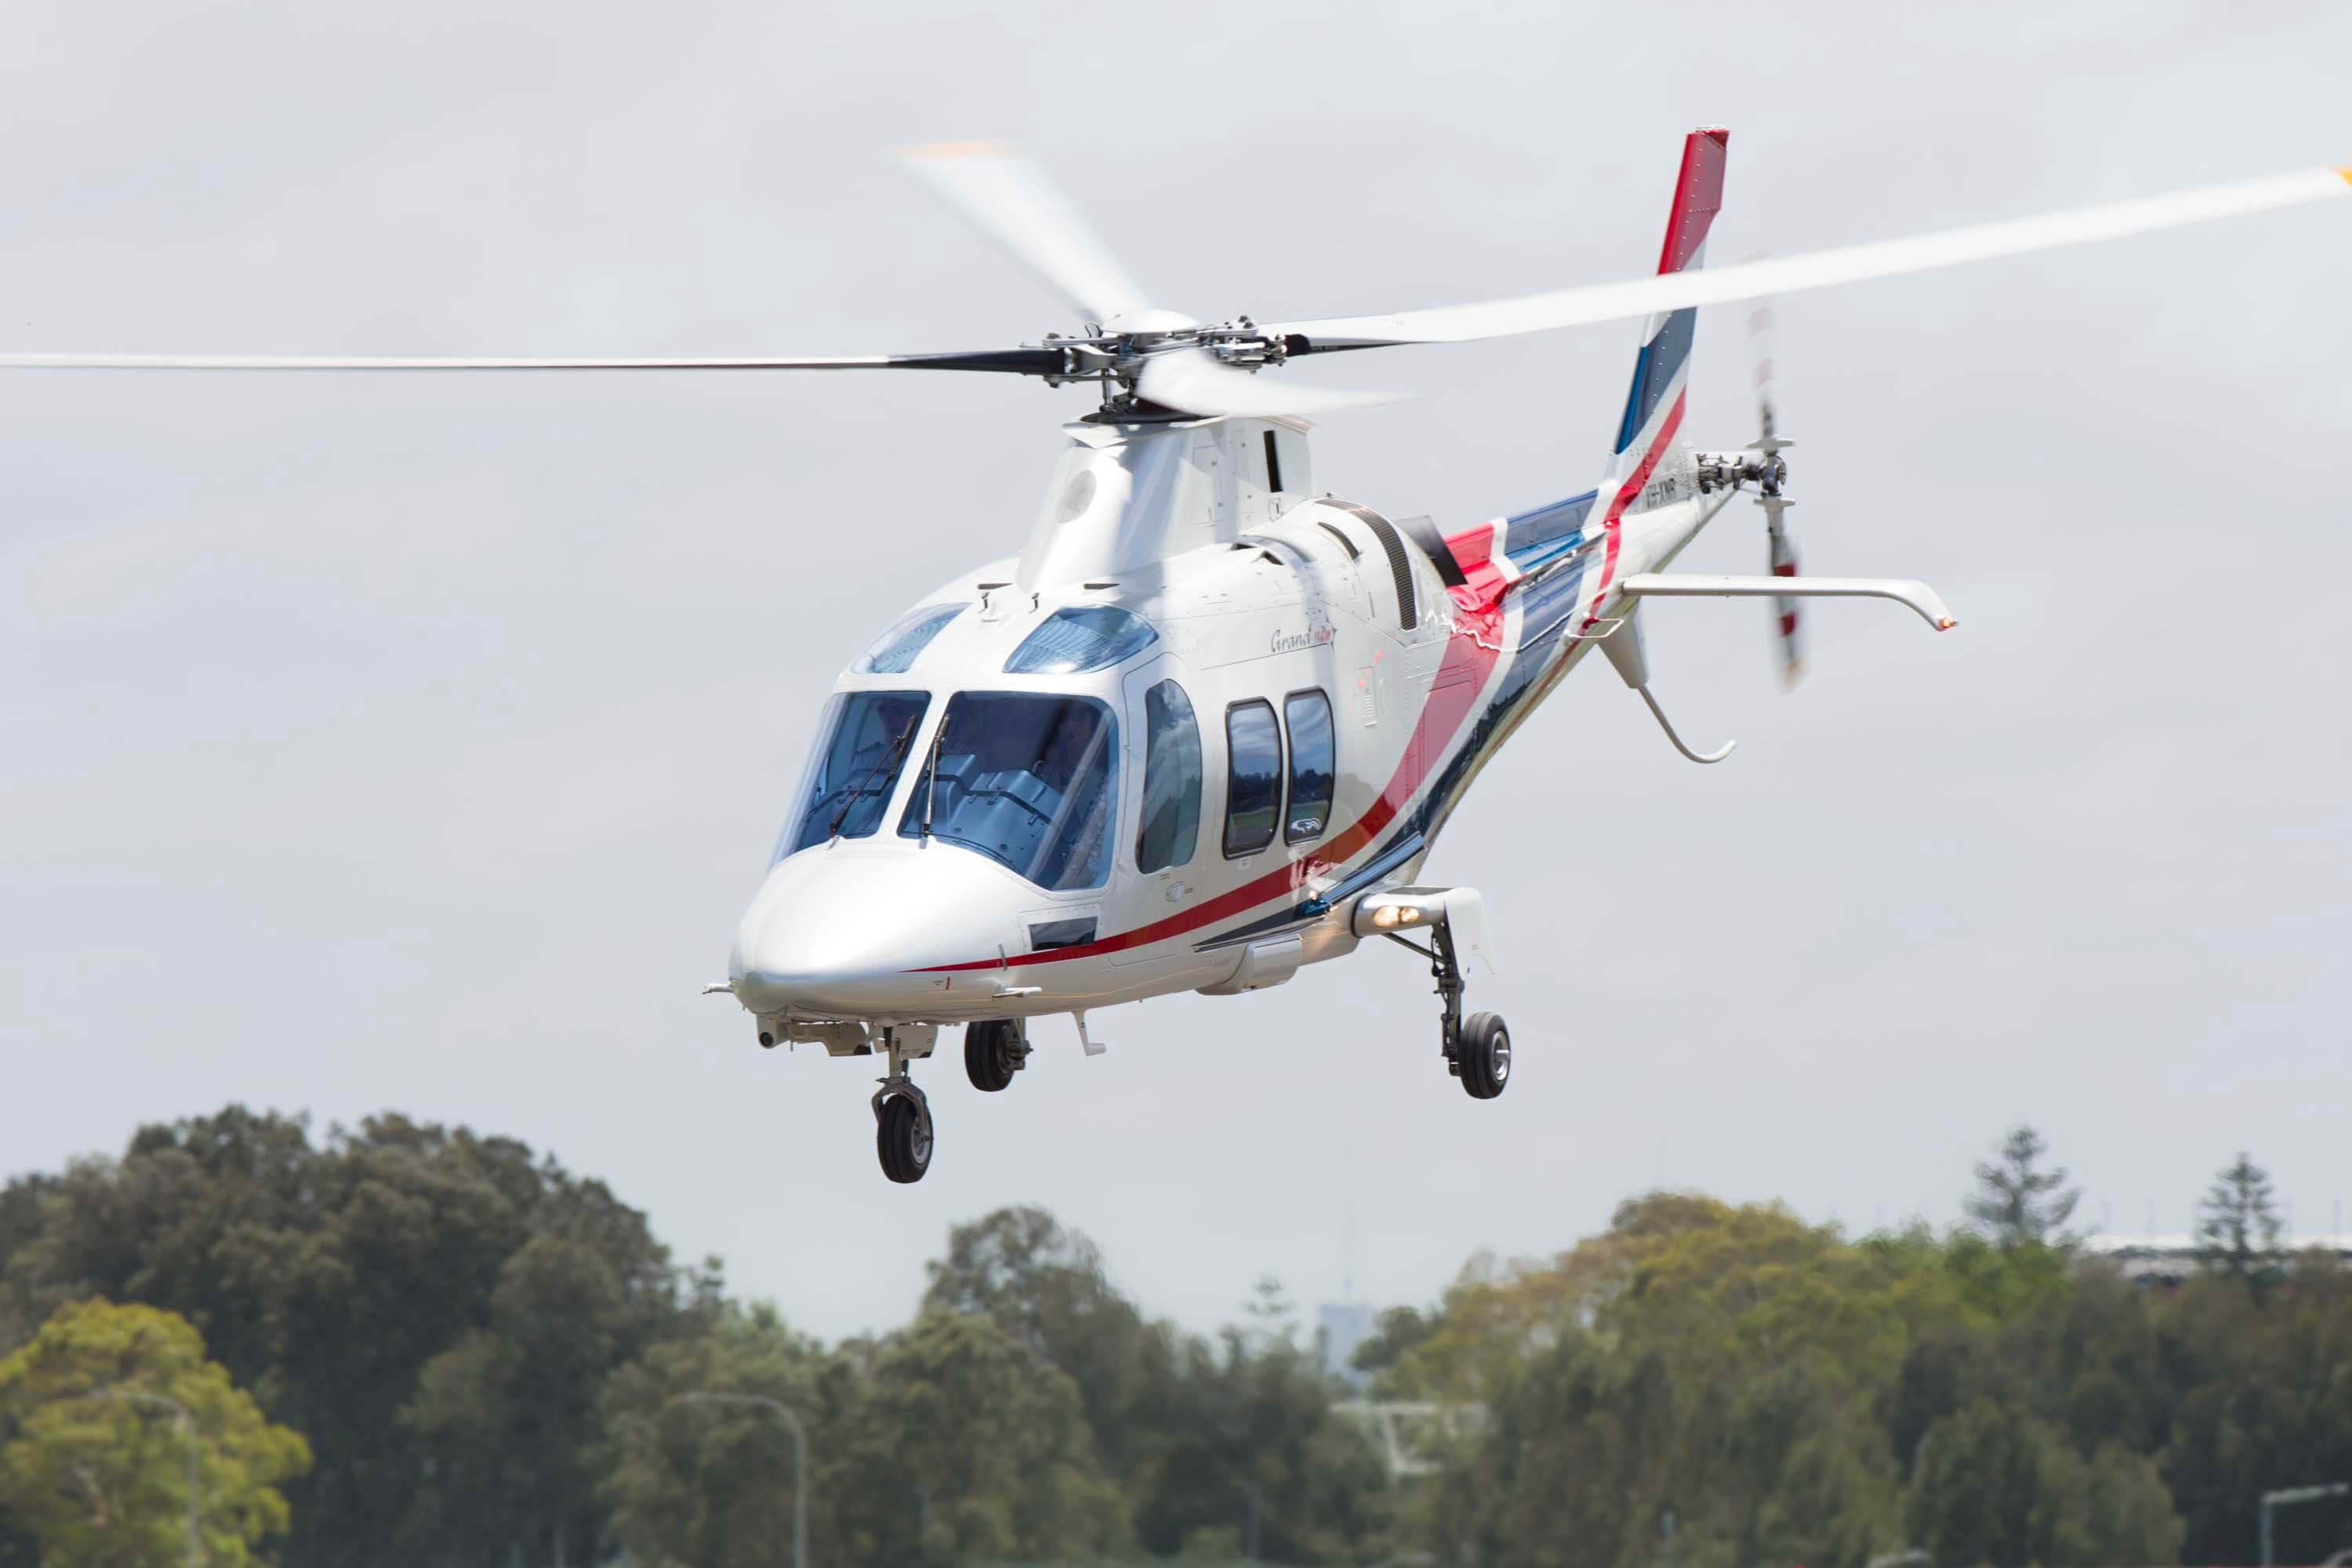 Helicopter rent For Wedding in Ahmedabad